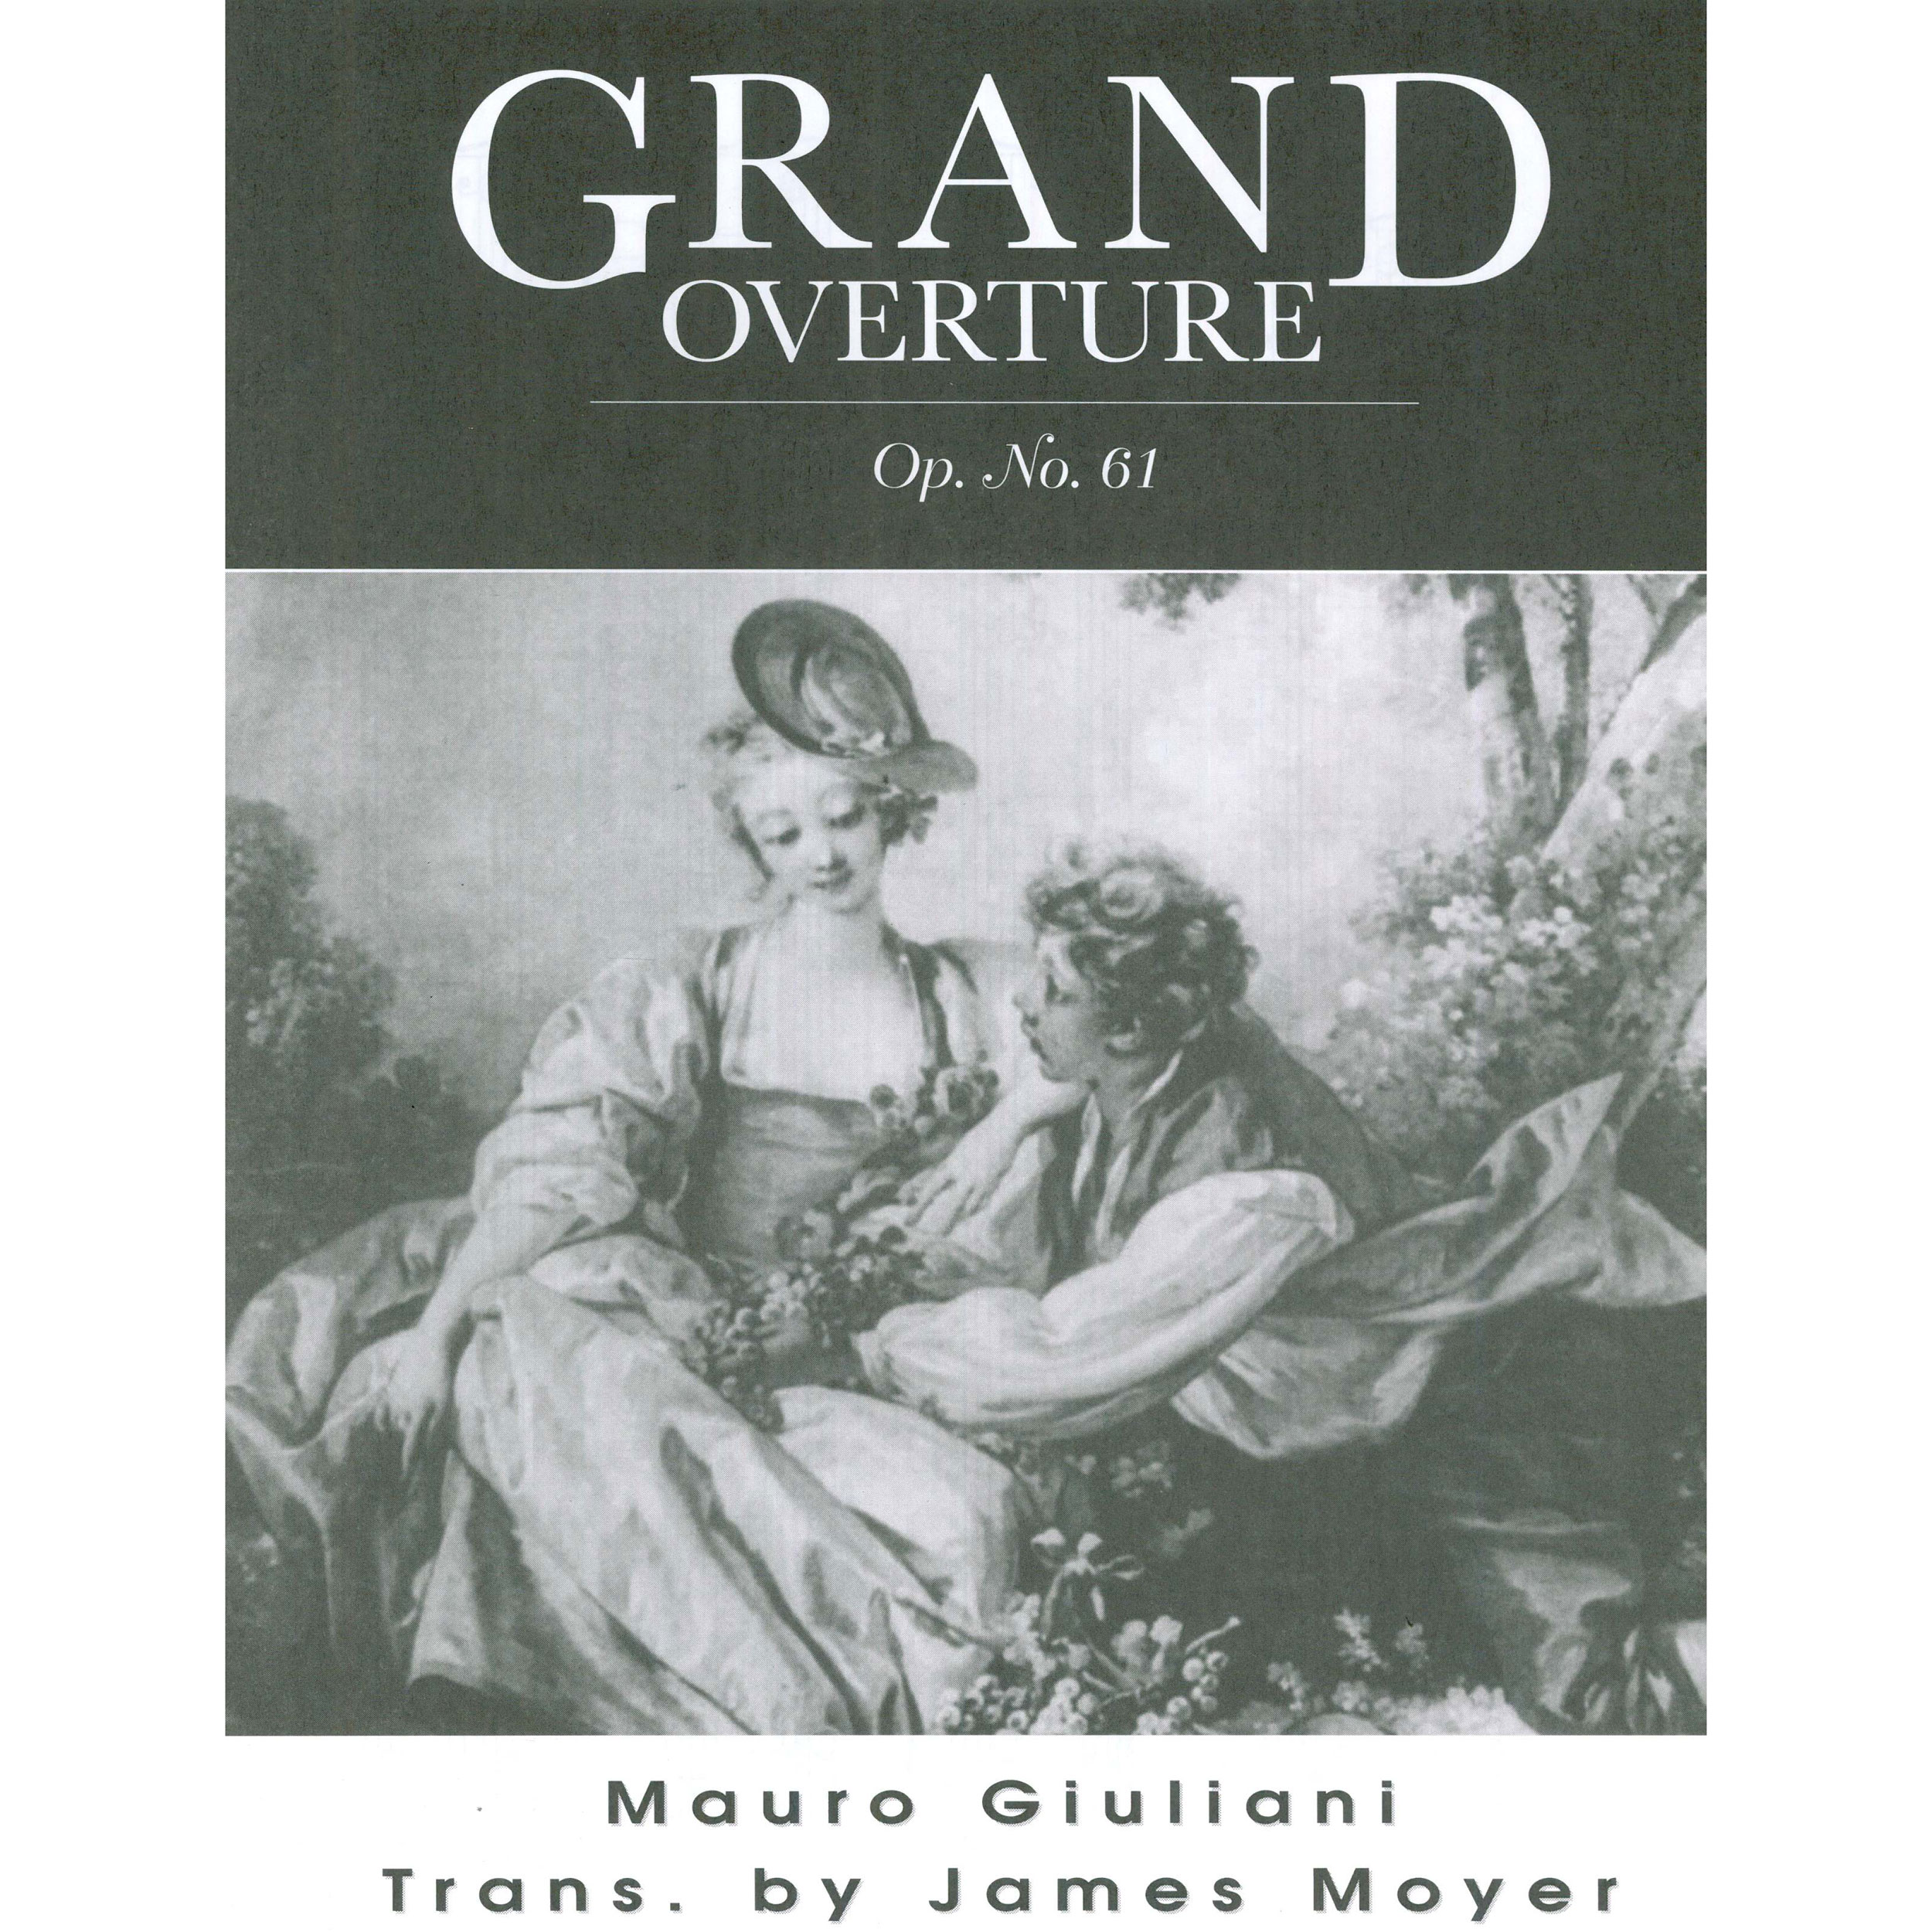 Grand Overture Op. 61 by Mauro Giuliani trans. James Moyer